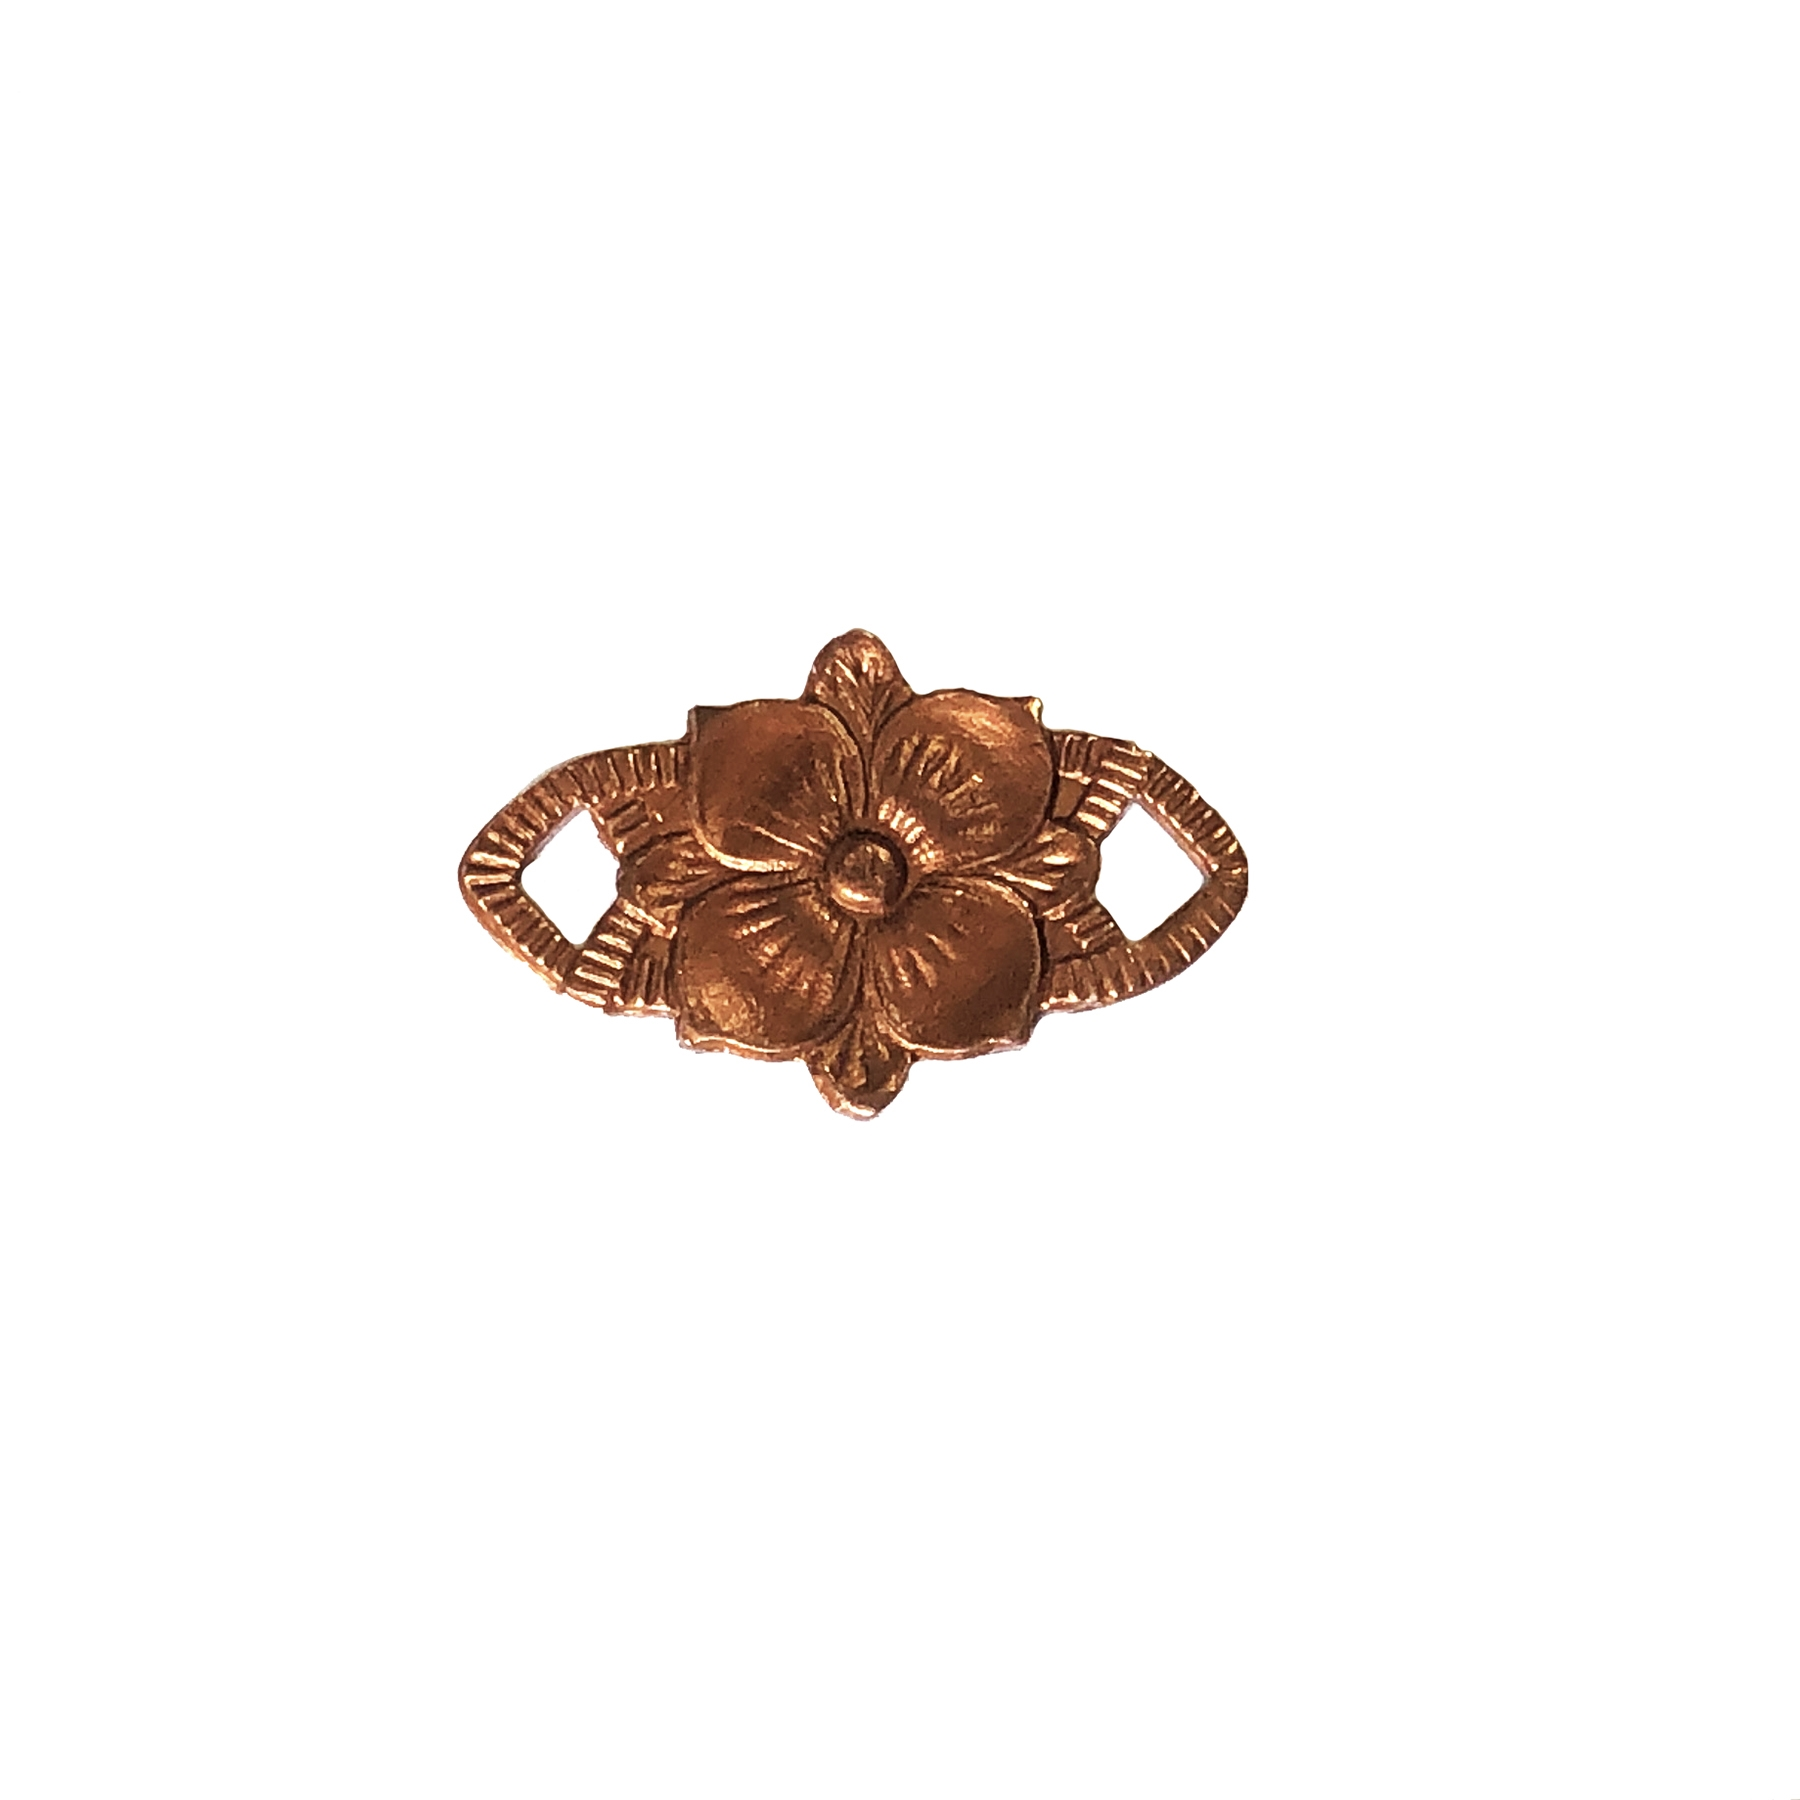 rosette, connector, jewelry making, jewelry supplies, flower connector, Victorian, vintage brass, antique copper, brass jewelry, vintage supplies, jewelry connectors, B'sue Boutiques, connector, flower, gingerbread brass, 0502